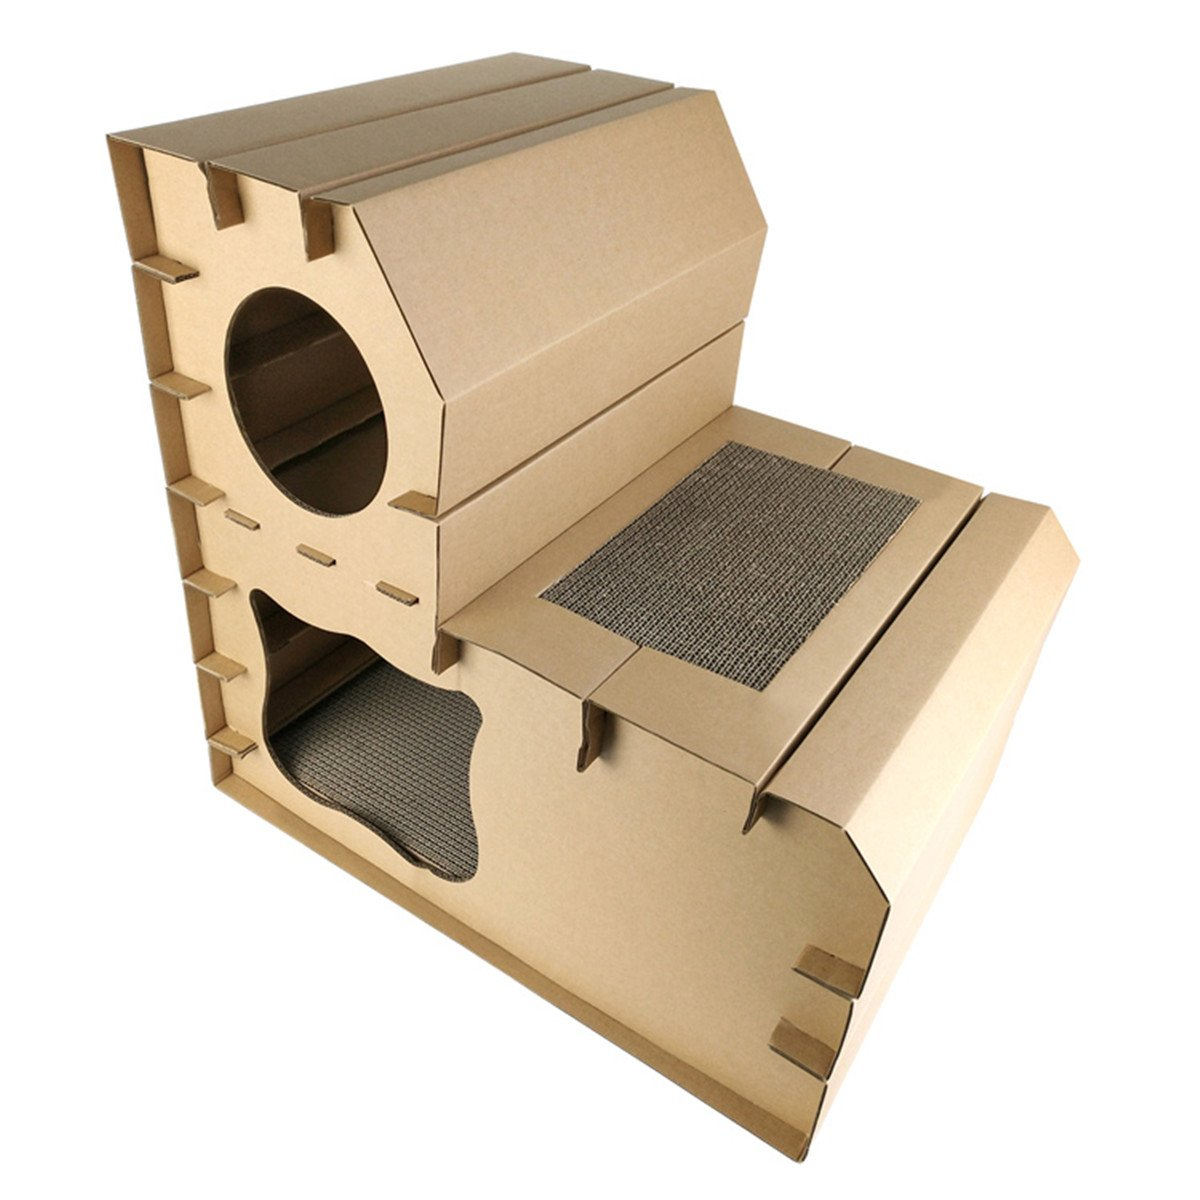 AYADA Cardboard Two Story Cat House Scratcher Bed Cave Nest Lounge, 2 Floors Cat Kitten Corrugated Cardboard Scratch Pad Durable Eco-friendly Pet Indoor Condo Lounger Activity Center